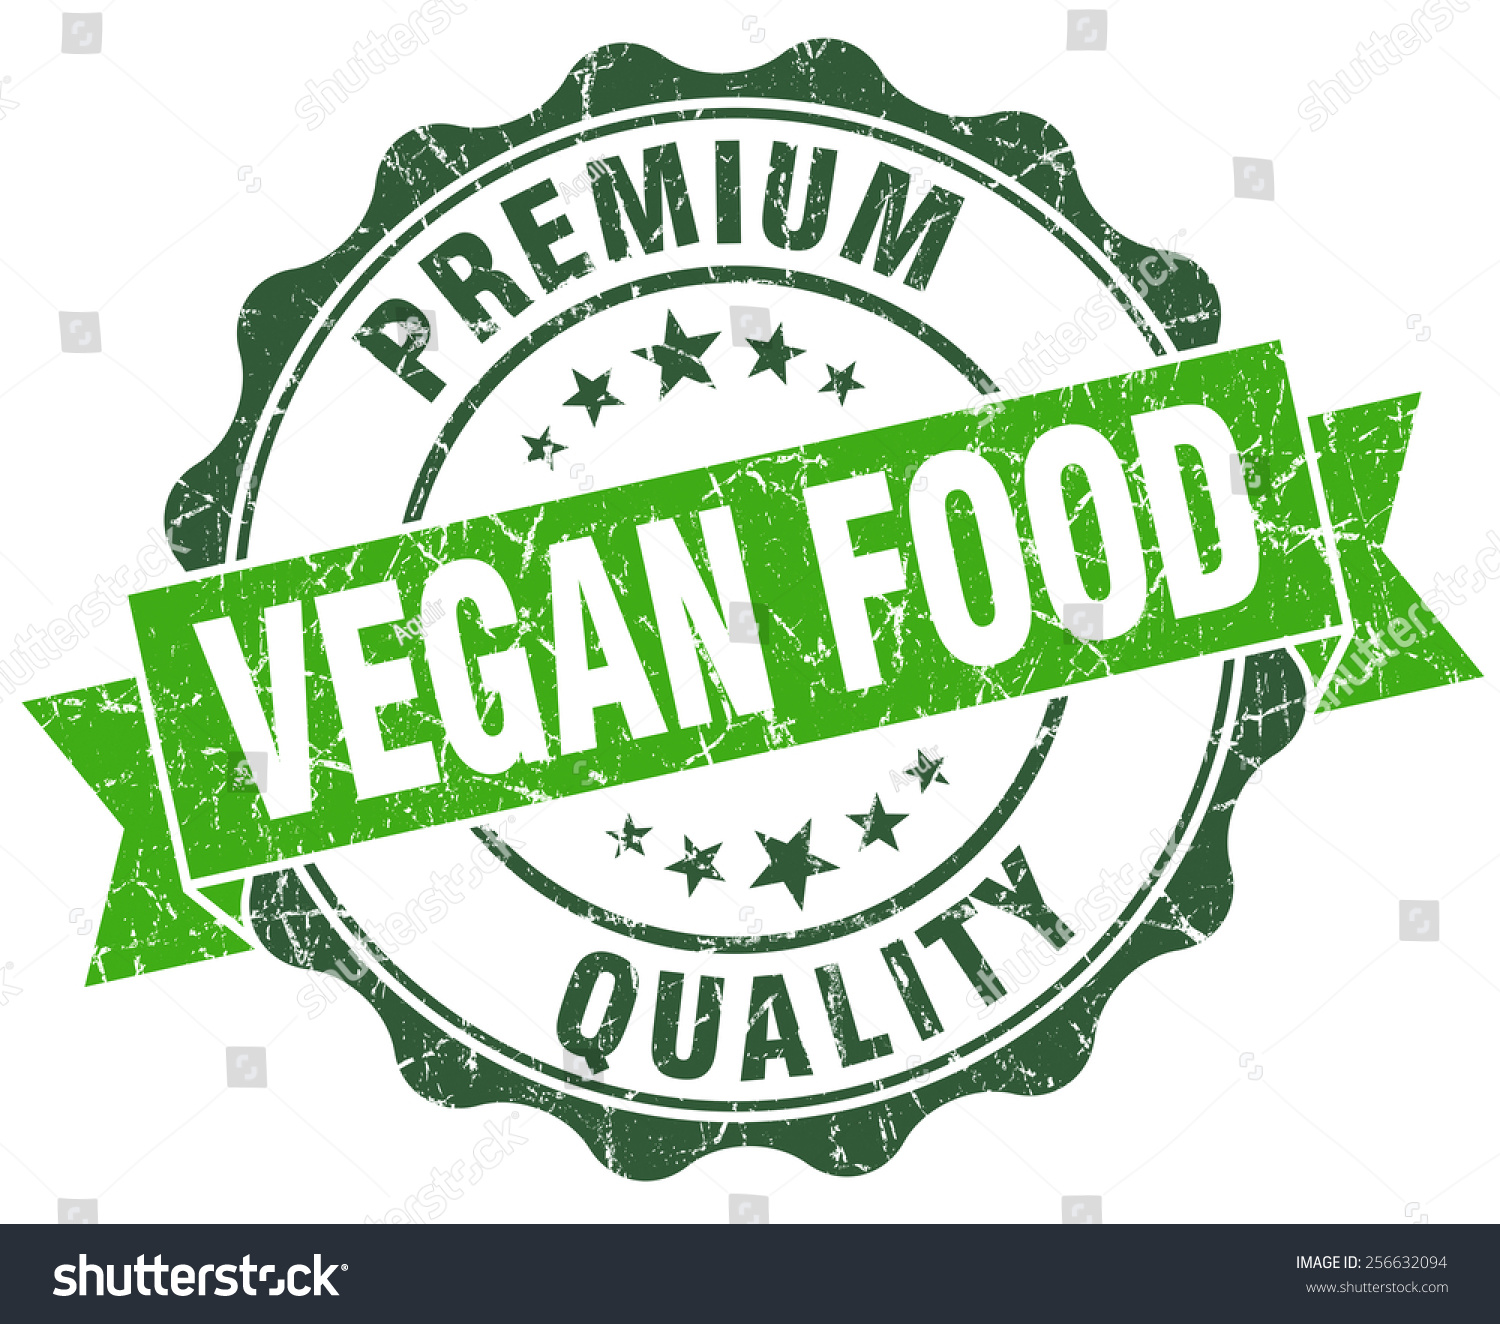 stock-photo-vegan-food-green-vintage-seal-isolated-on-white-256632094